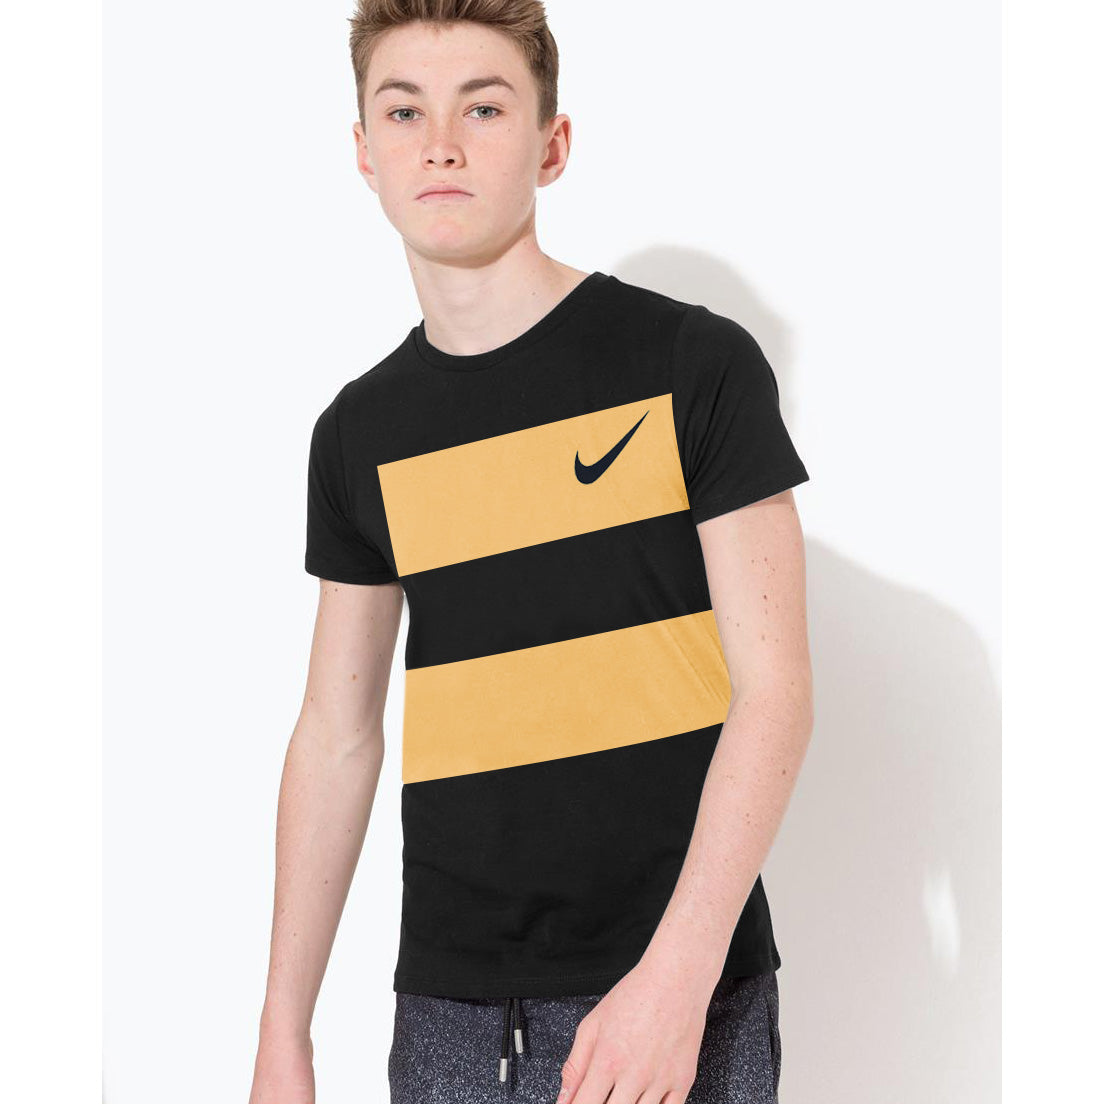 NK Crew Neck Single Jersey Tee Shirt For Kids-Black & Blaze Yellow Panels-BE12409